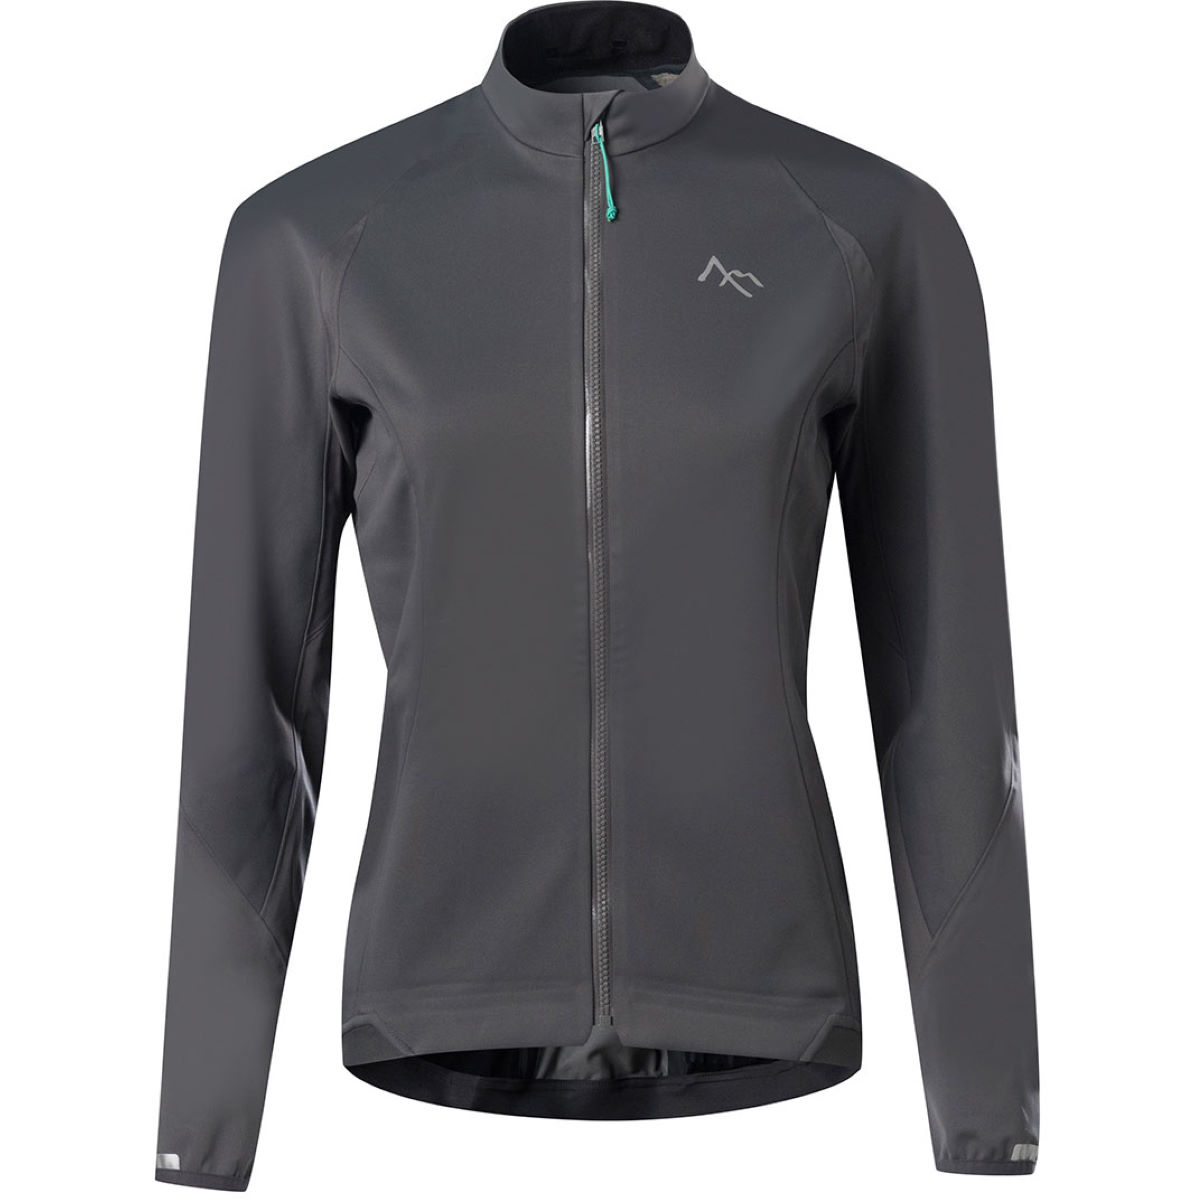 Veste Femme 7Mesh Strategy Windstopper - S Ash Coupe-vents vélo